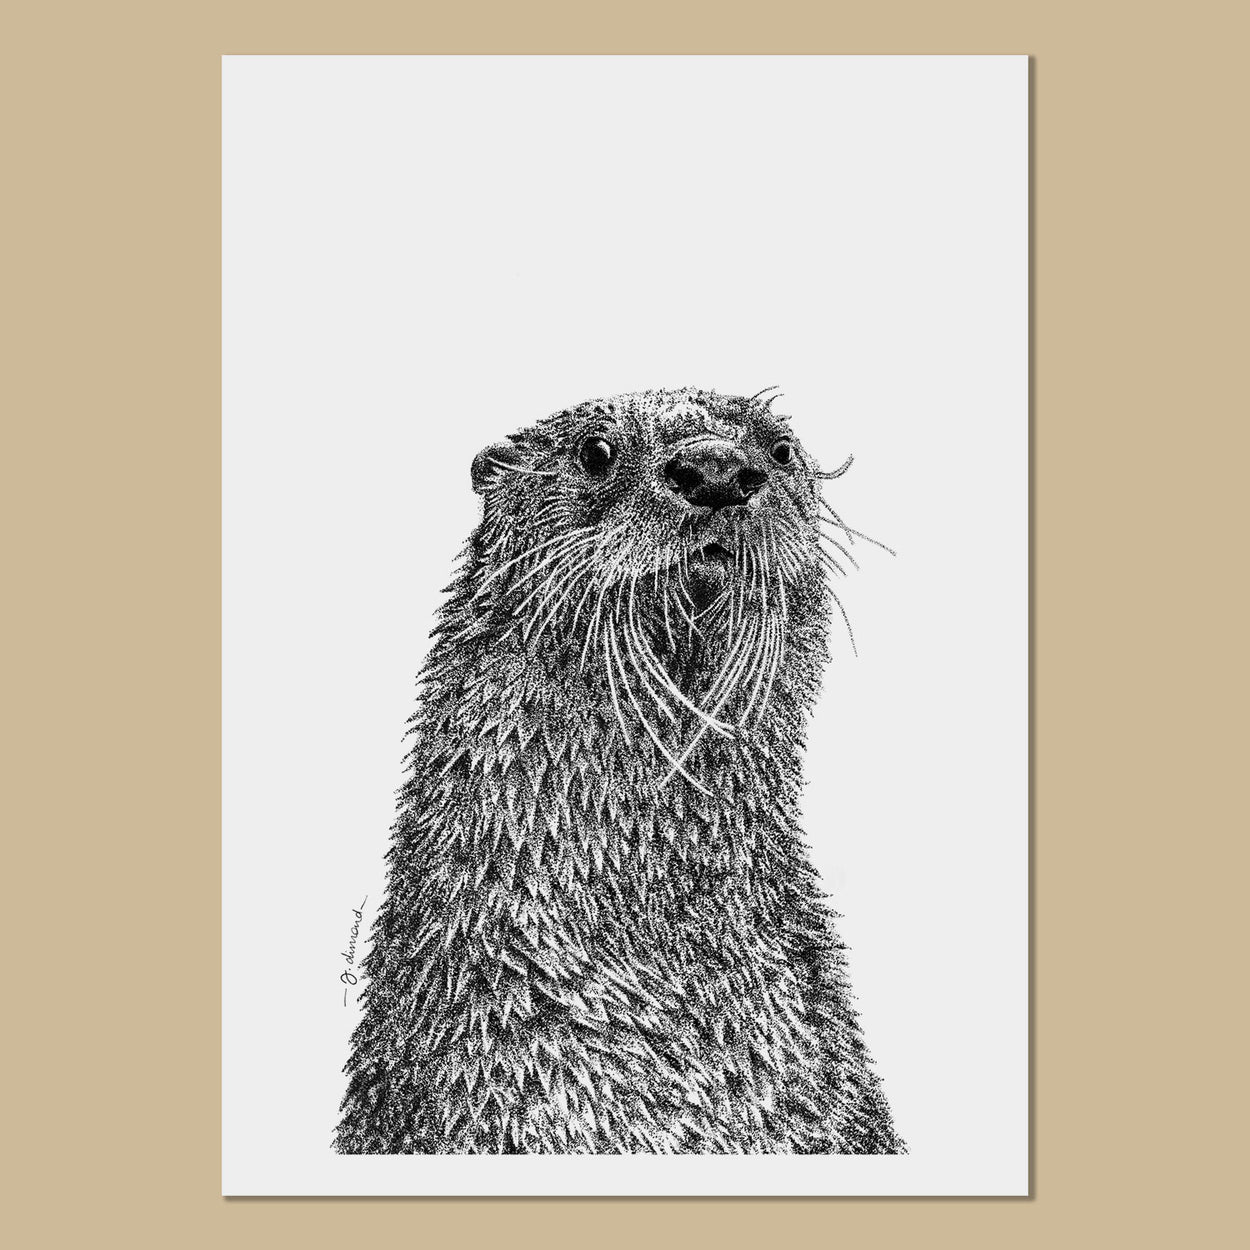 Otter Art Prints - The Thriving Wild